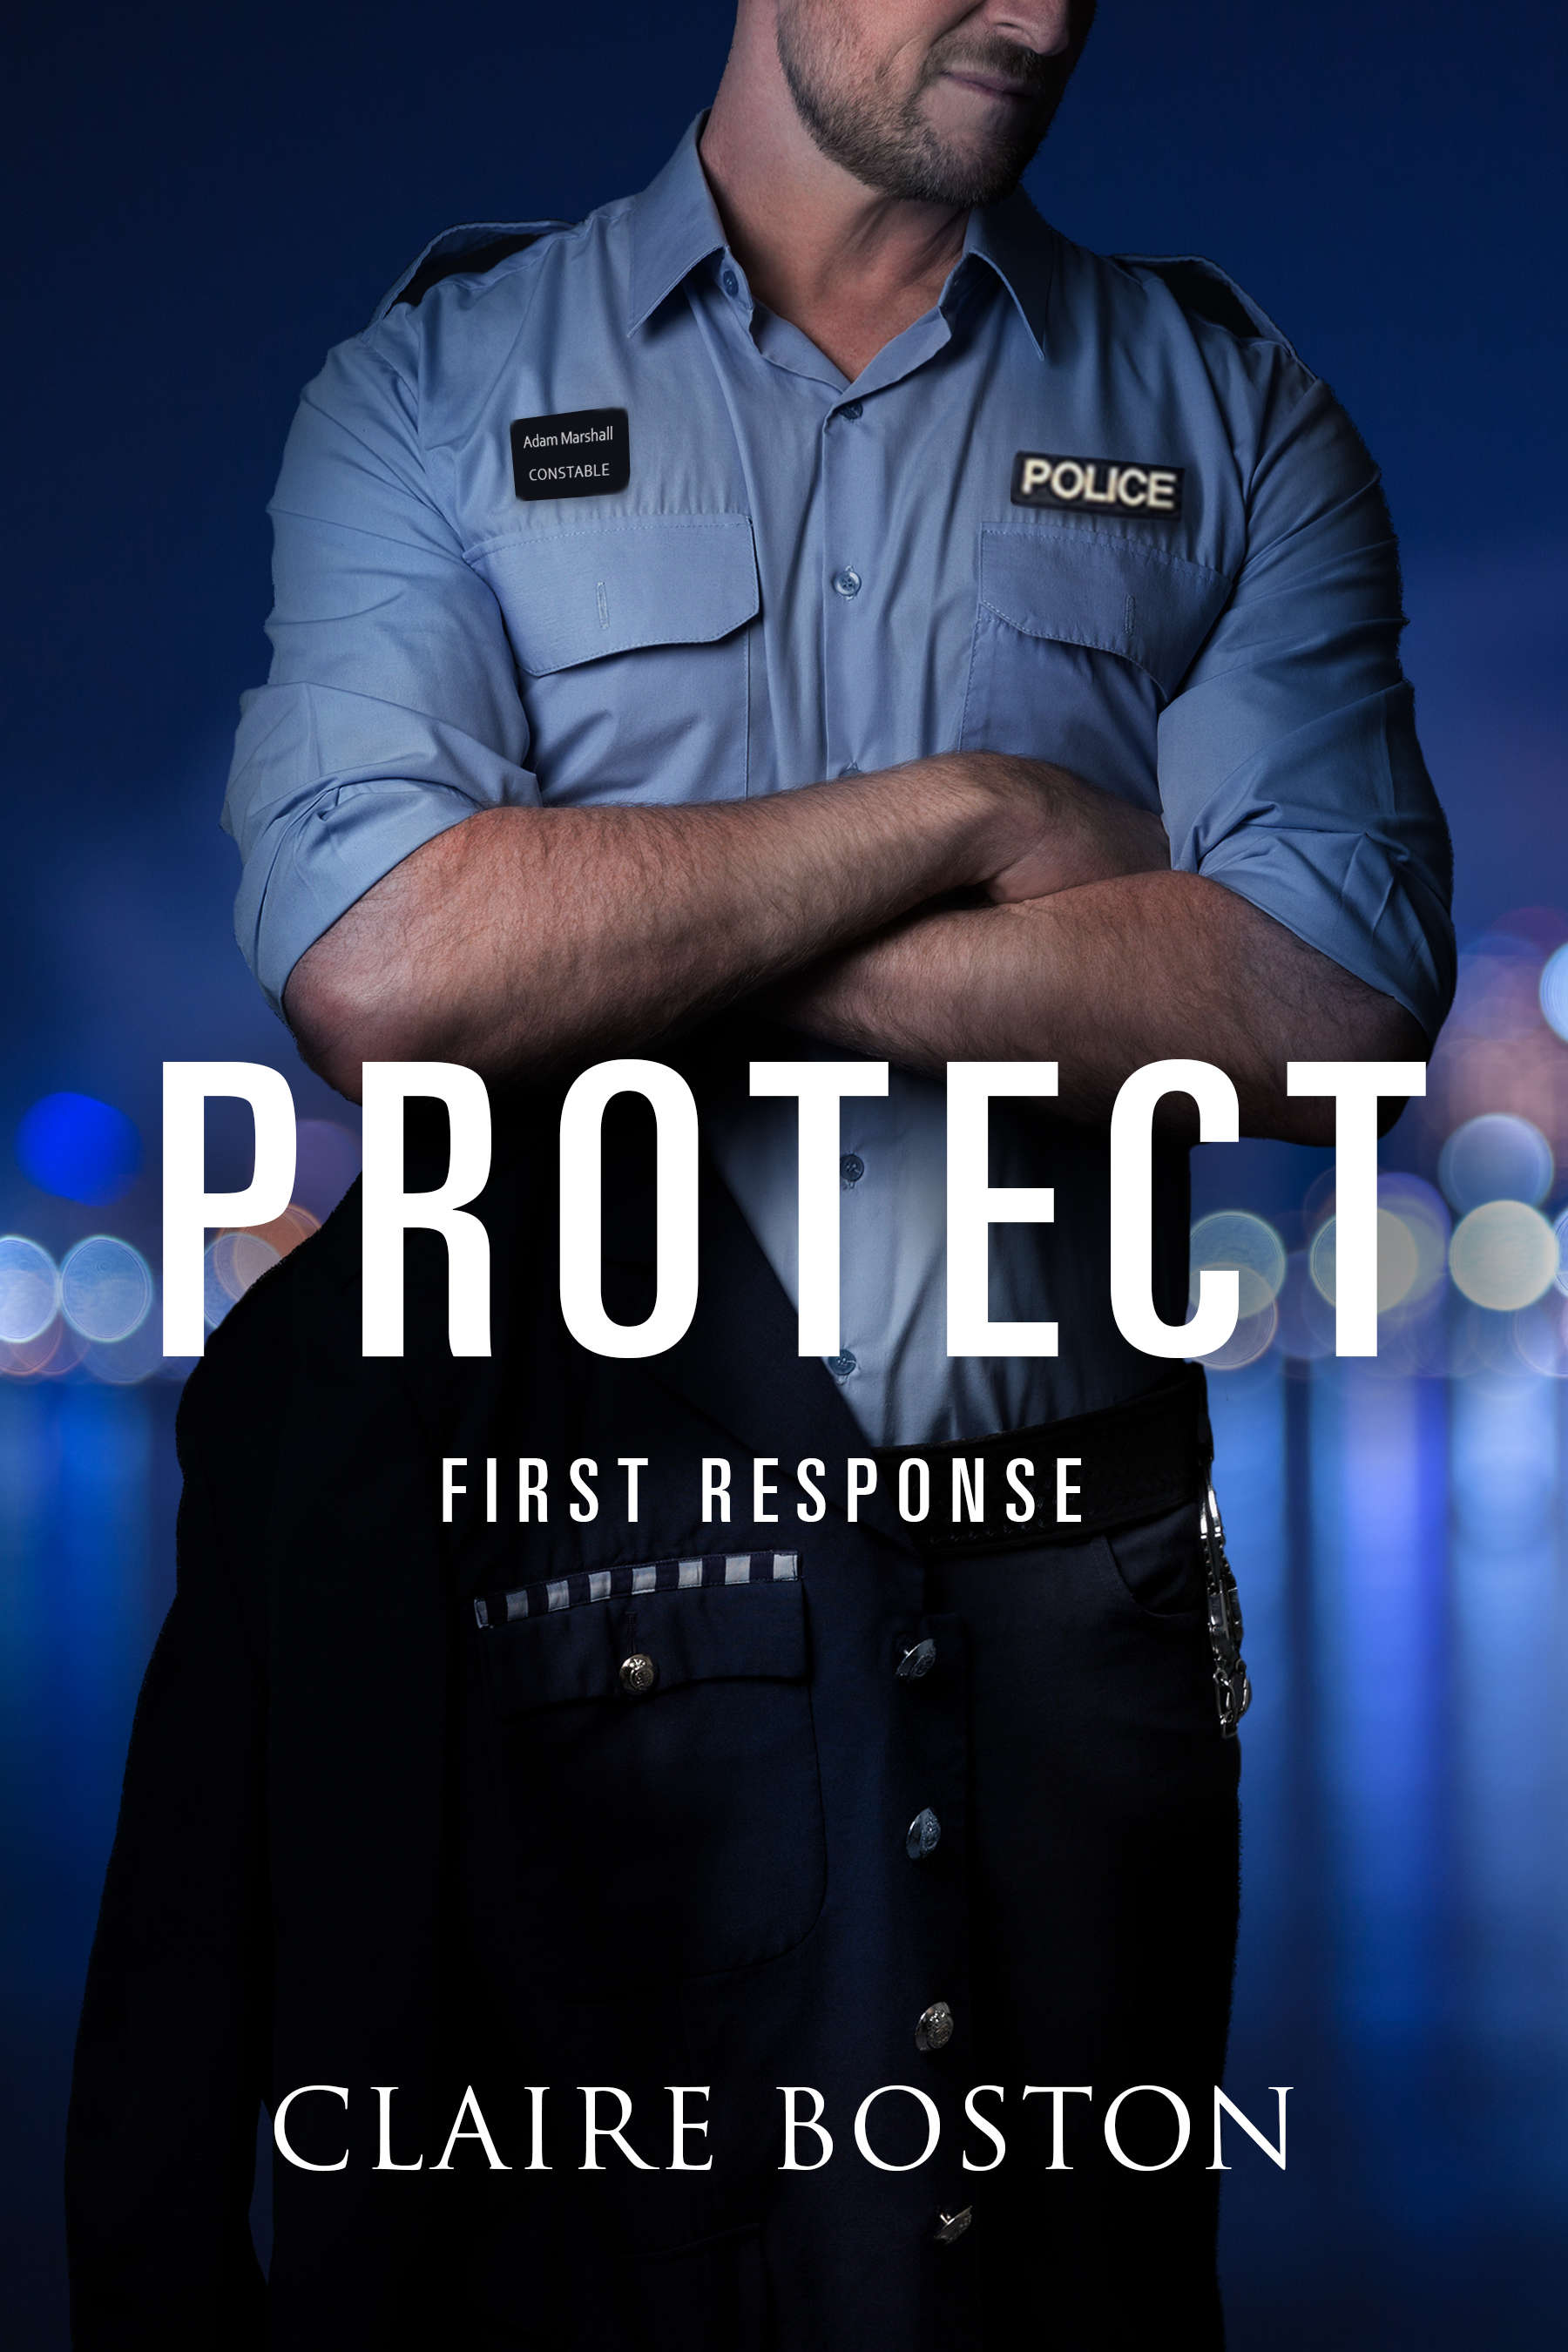 Protect Cover - Police officer with arms cross in front of city background